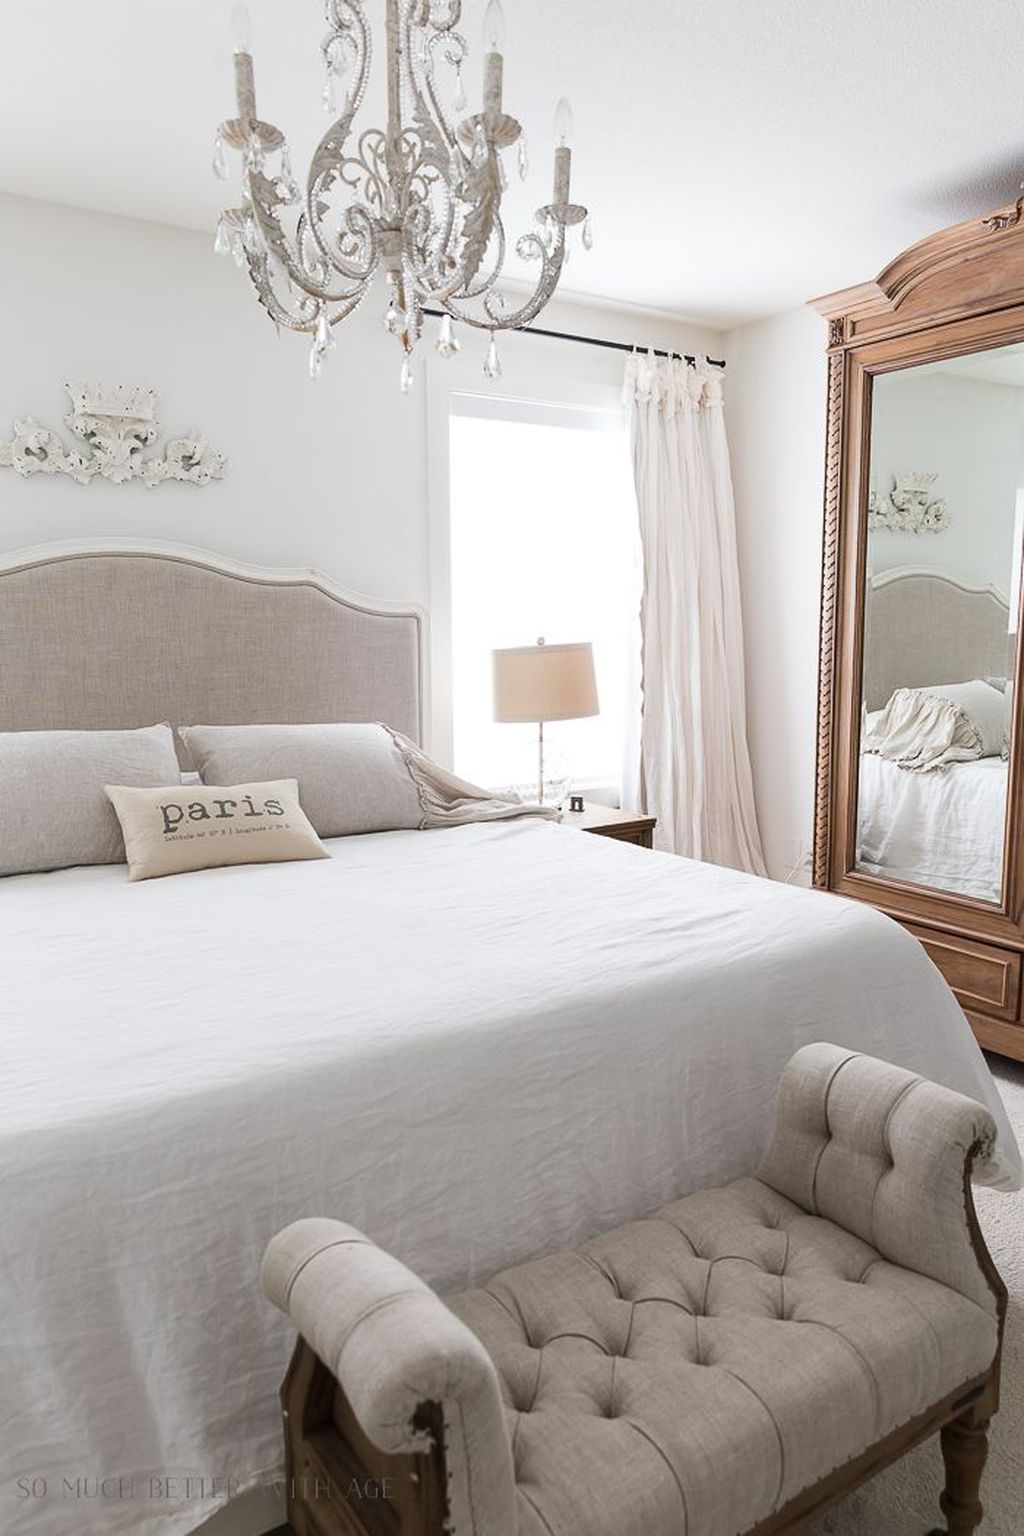 31 Stunning French Bedroom Decor Ideas That Will Inspire You In